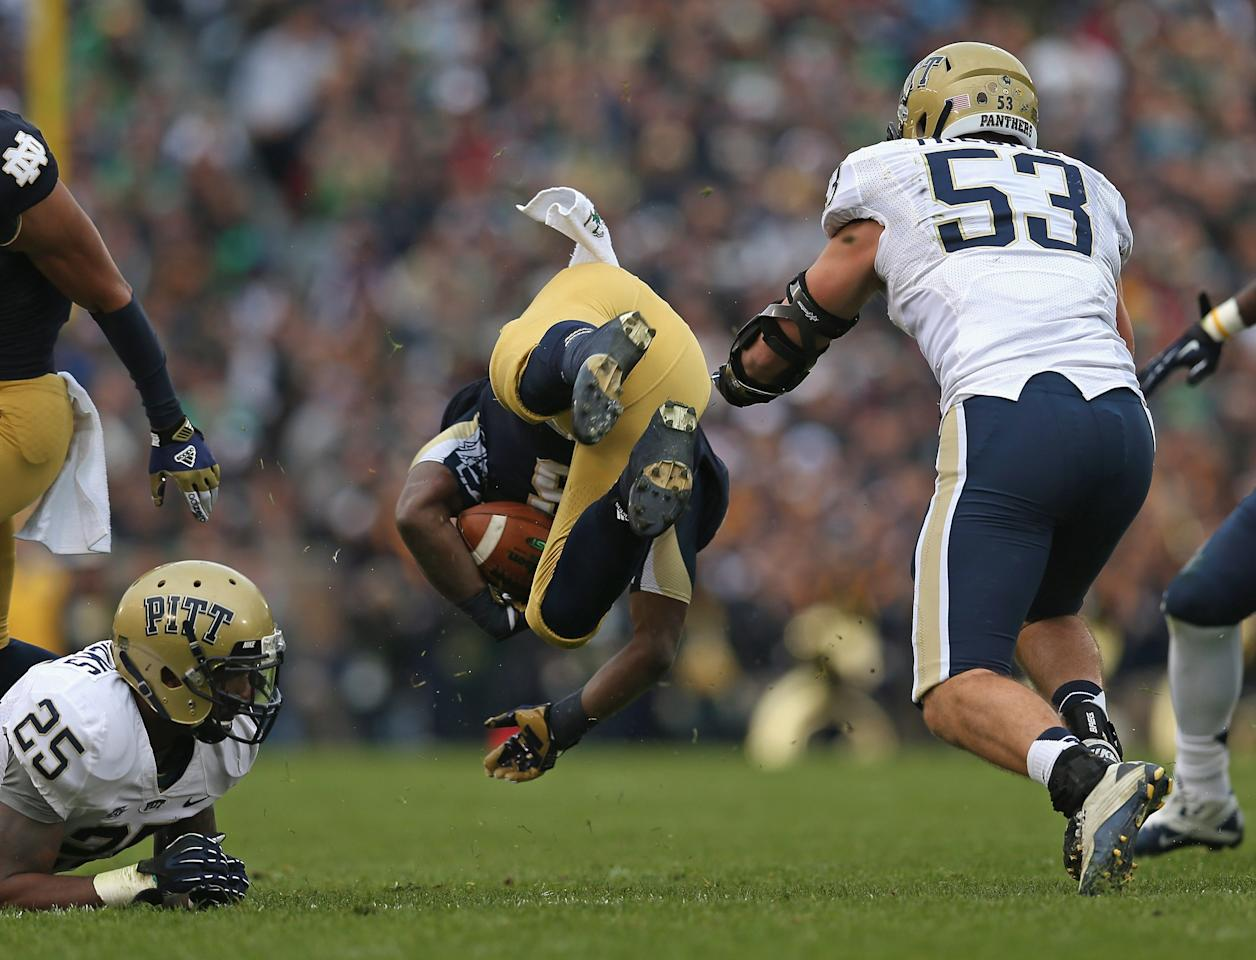 SOUTH BEND, IN - NOVEMBER 03: Theo Riddick #6 of the Notre Dame Fighting Irish flips in the air between Jason Hendricks #25 and Joe Trebitz #53 of the Pittsburgh Panthers at Notre Dame Stadium on November 3, 2012 in South Bend, Indiana. (Photo by Jonathan Daniel/Getty Images)